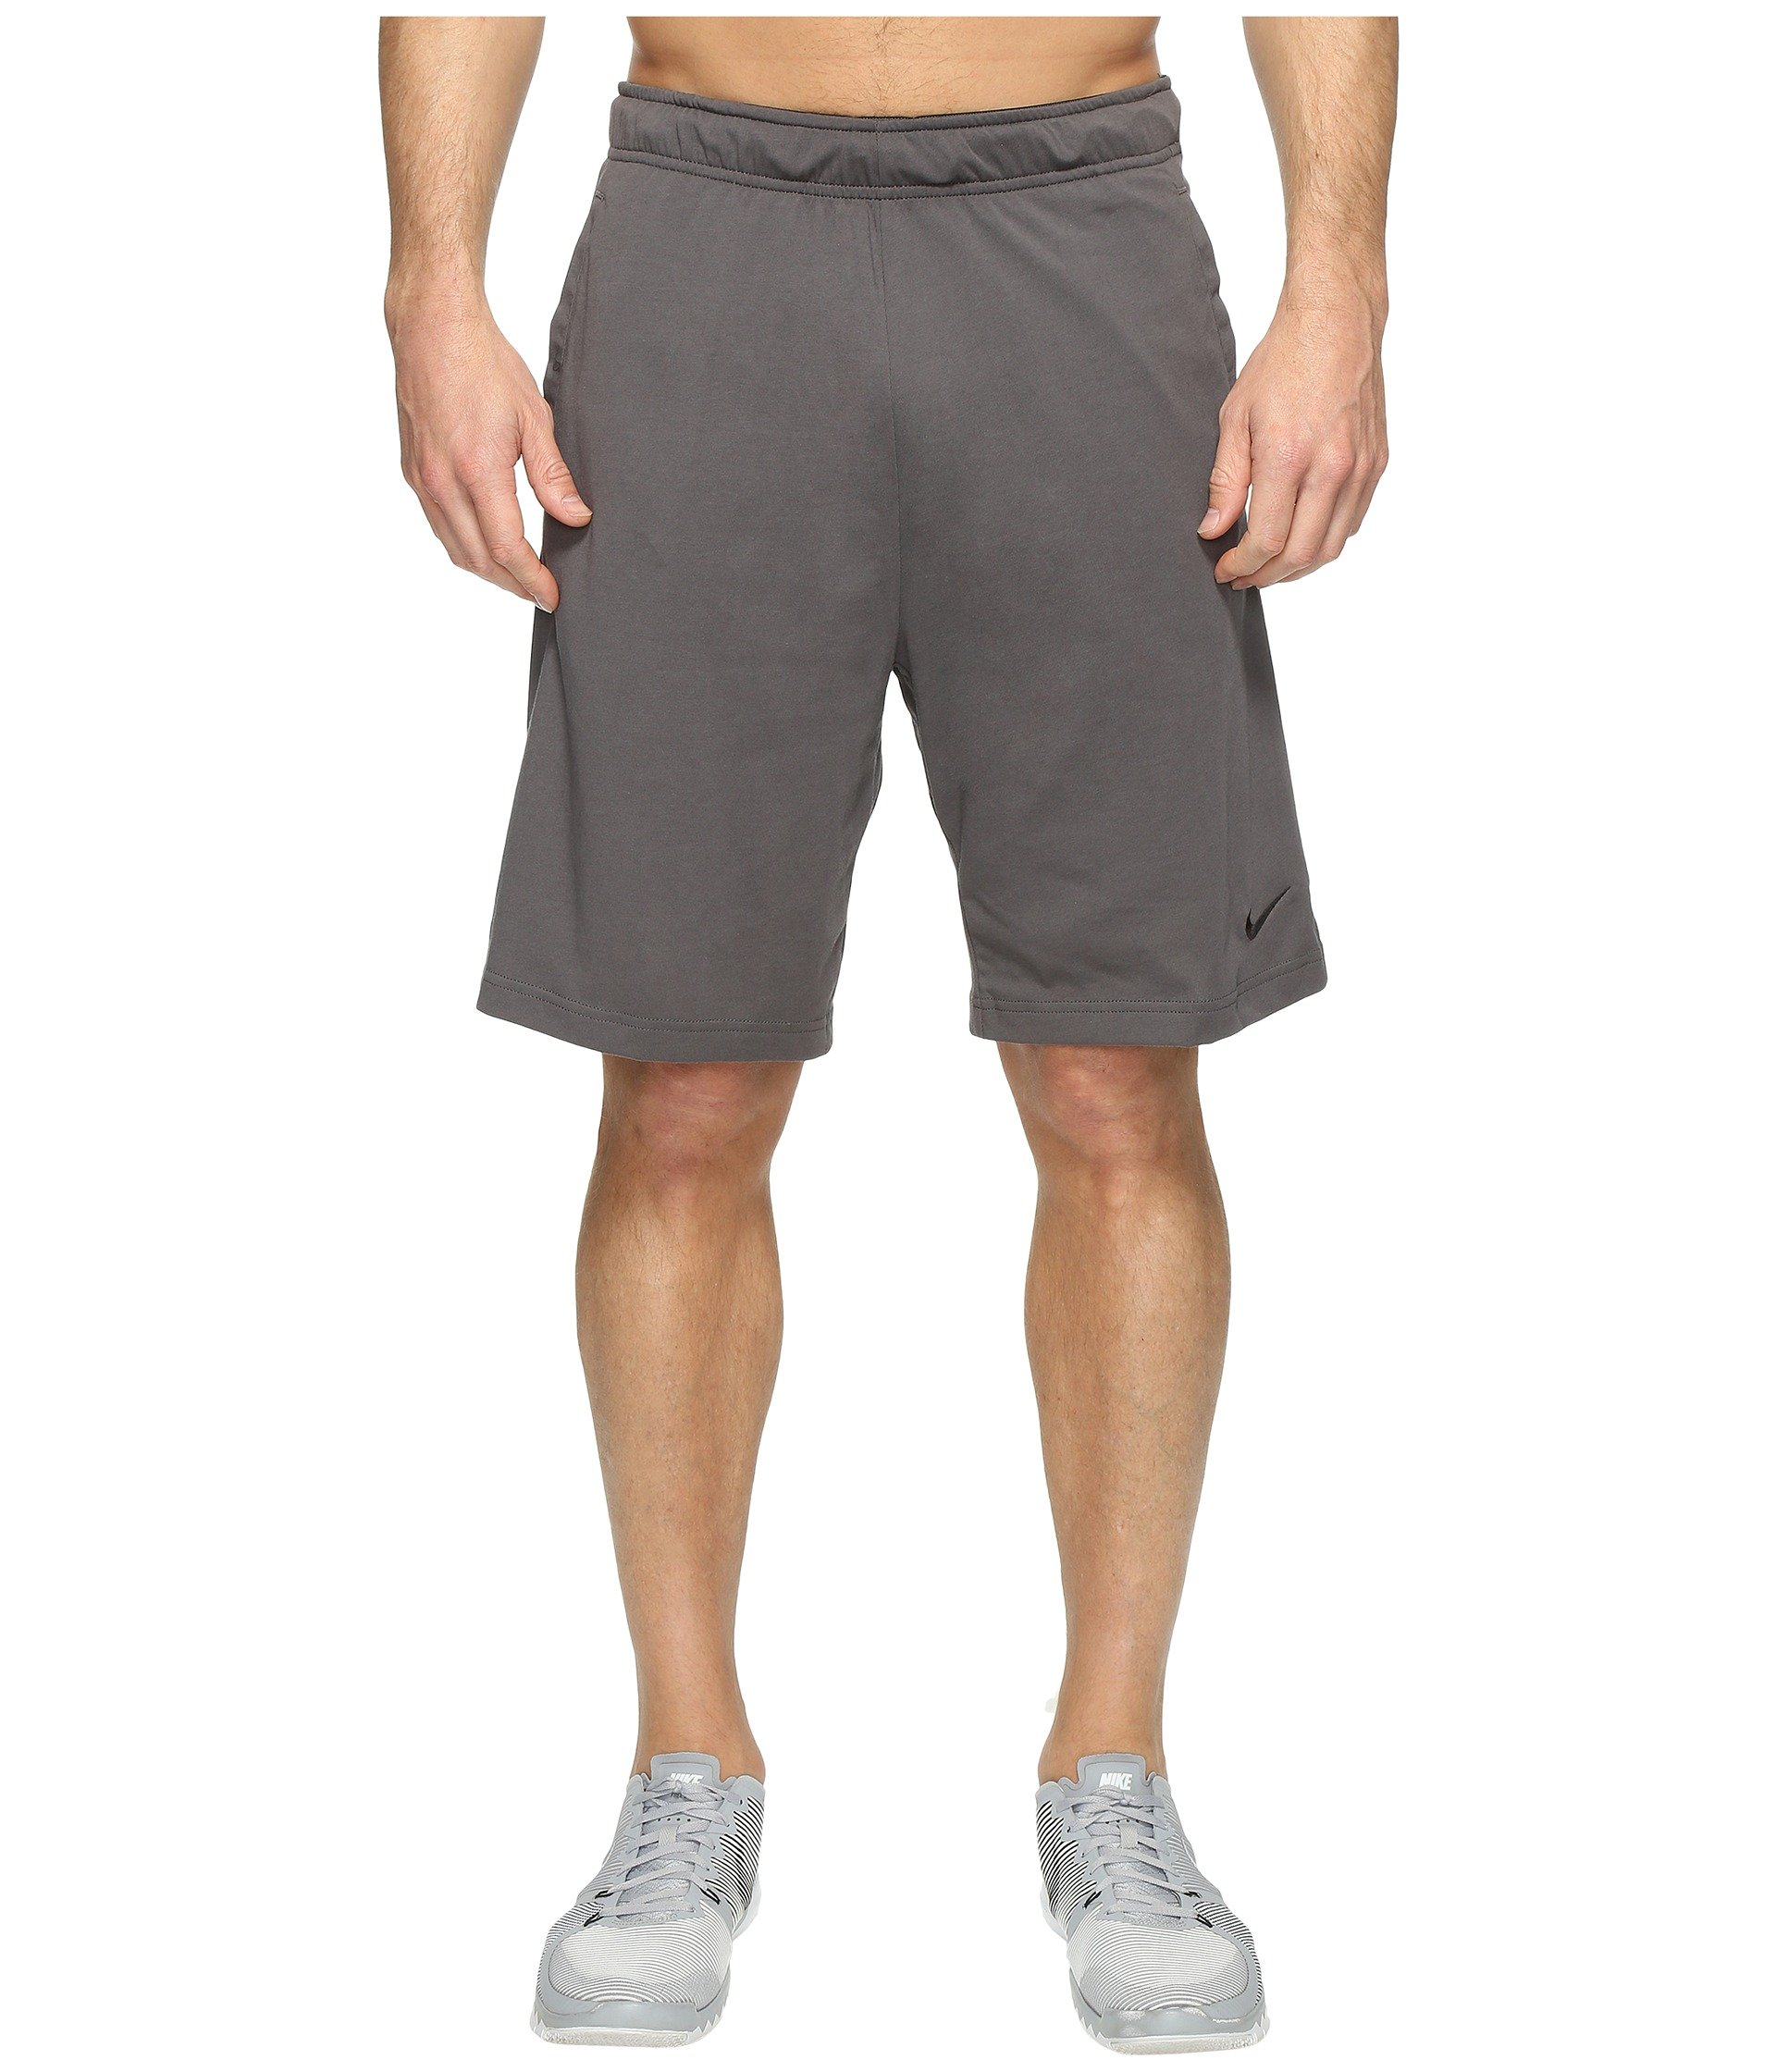 NIKE Men's Training Short Midnight Fog/Black/Black (m) by Nike